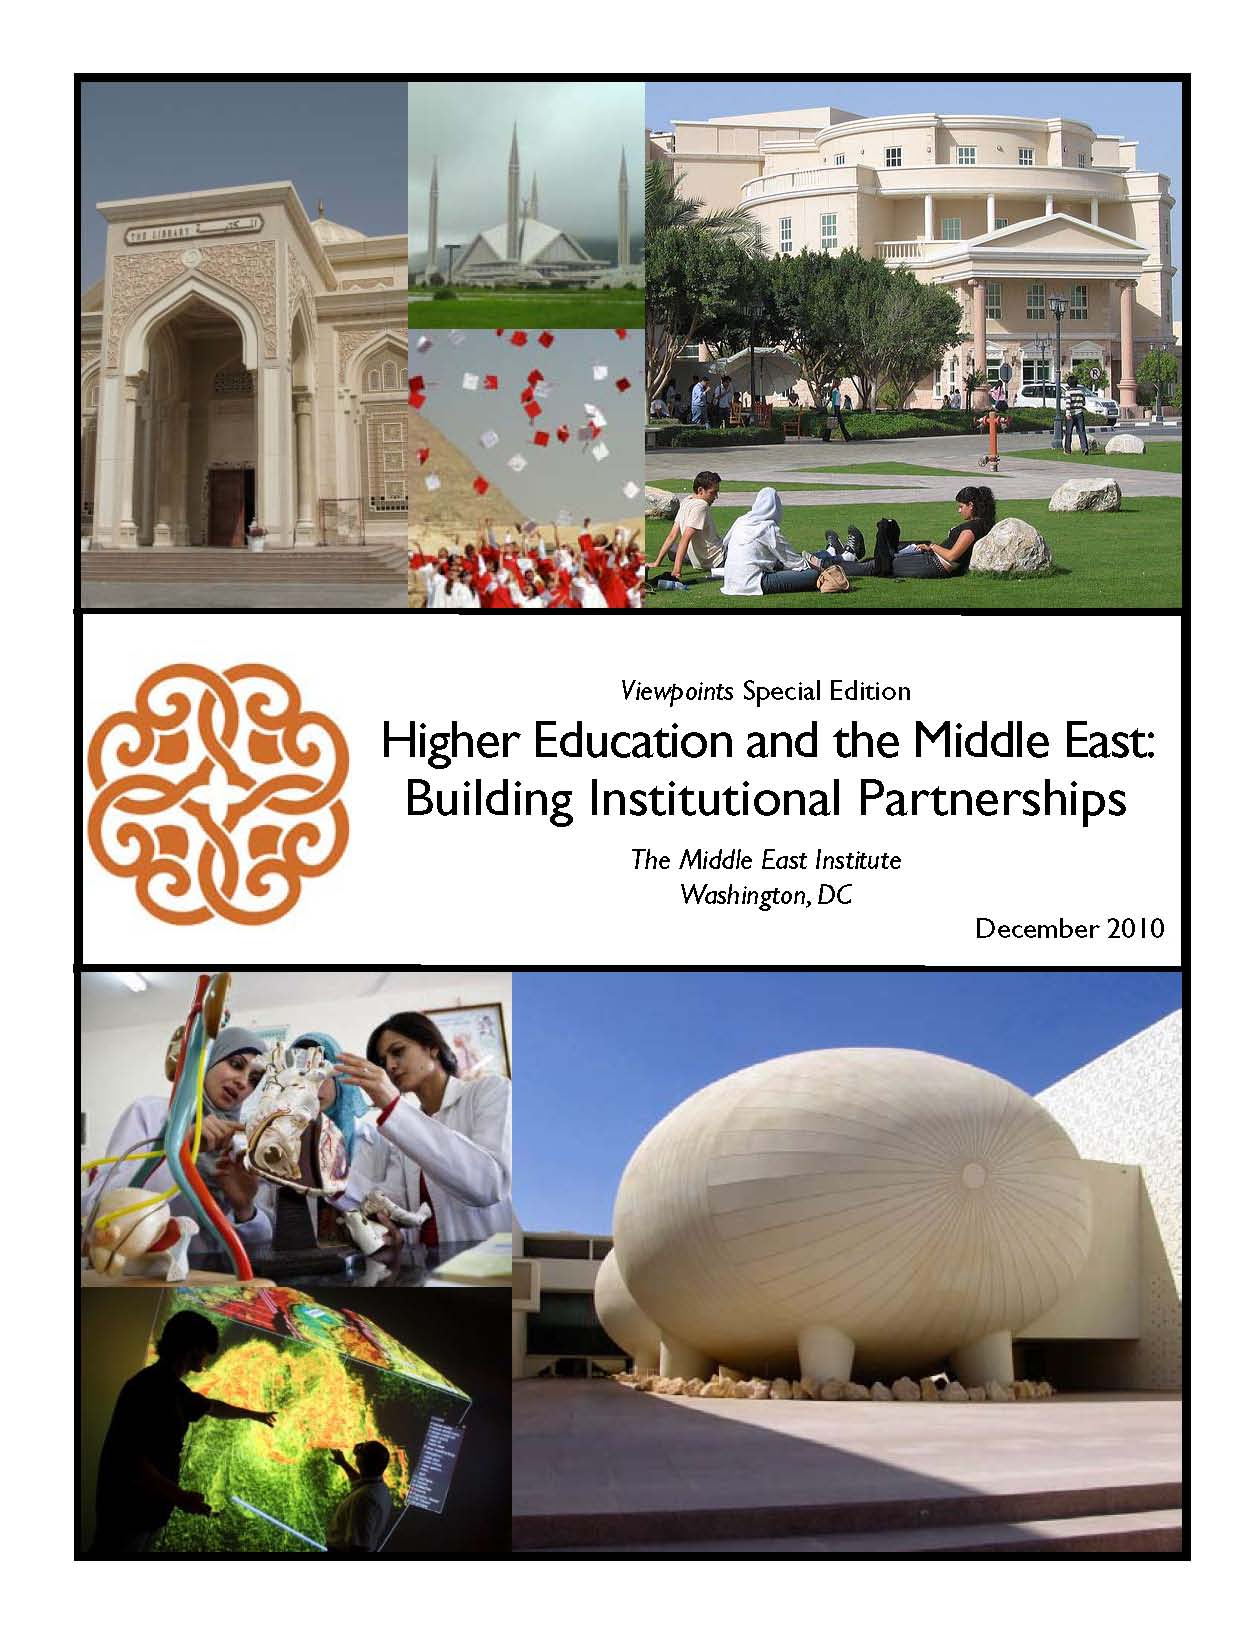 Introduction to Higher Education and the Middle East: Building Institutional Partnerships